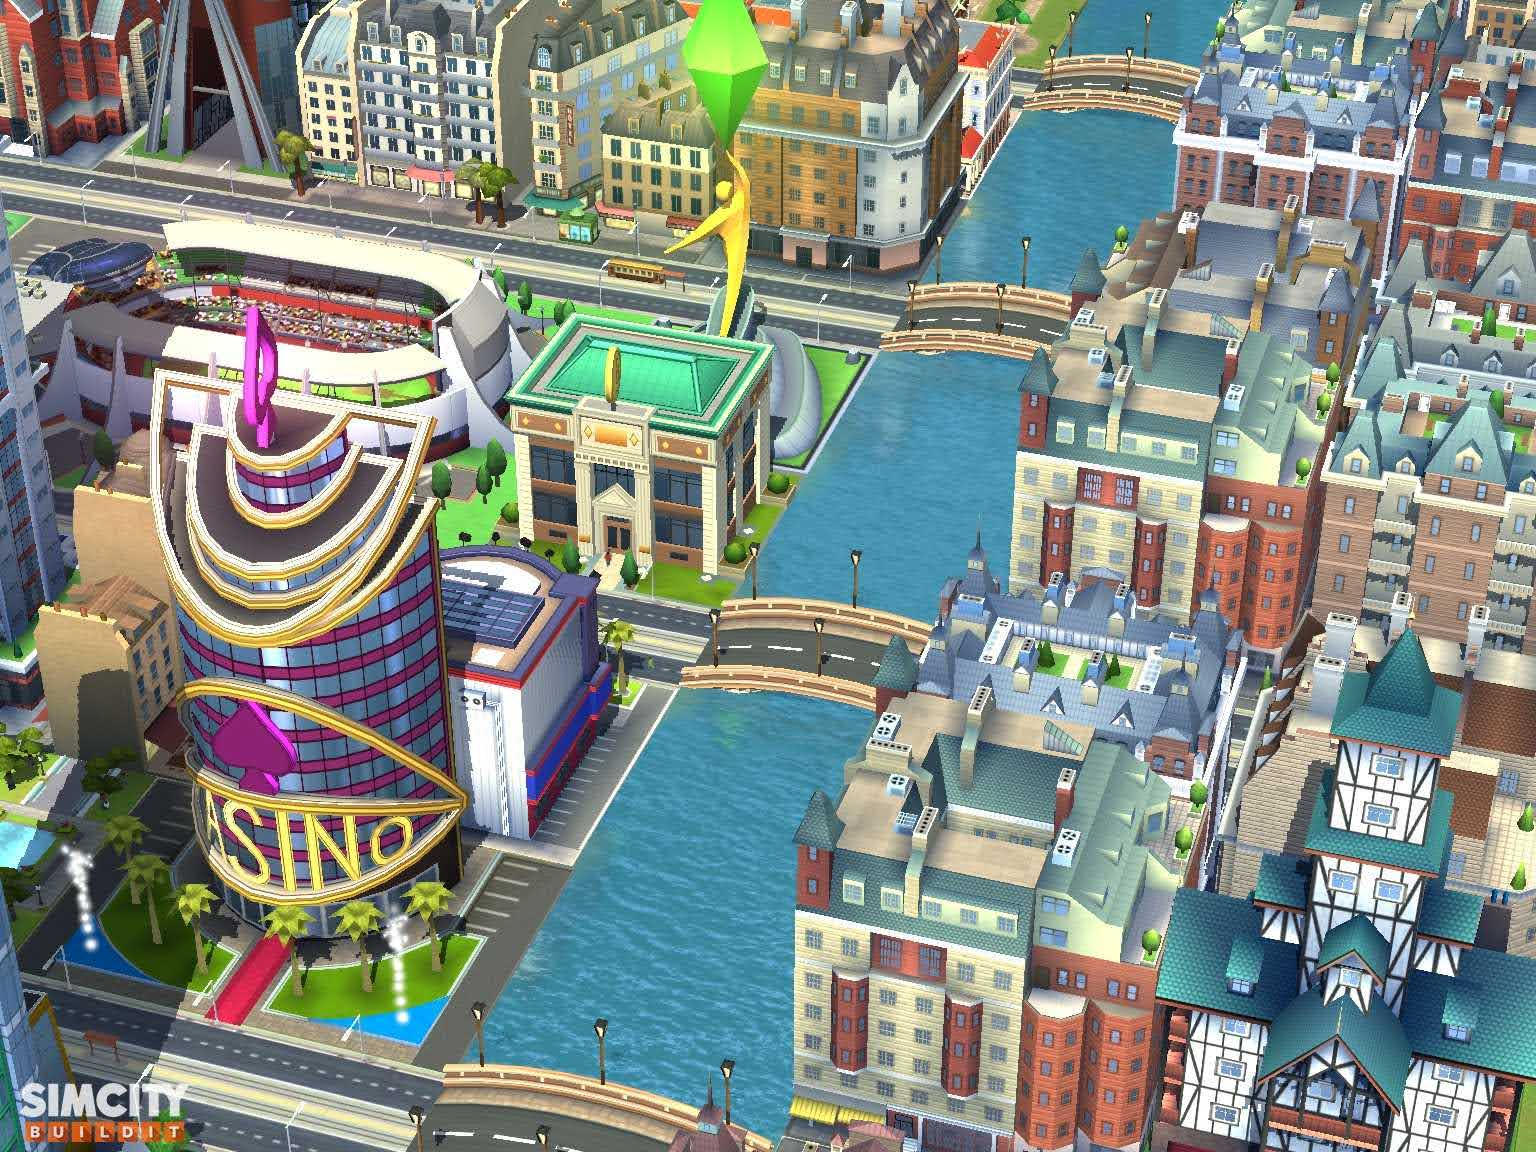 The House of Spades Casino, SimCity Bank, Track and Field Stadium and Ultimate Mayor Statue